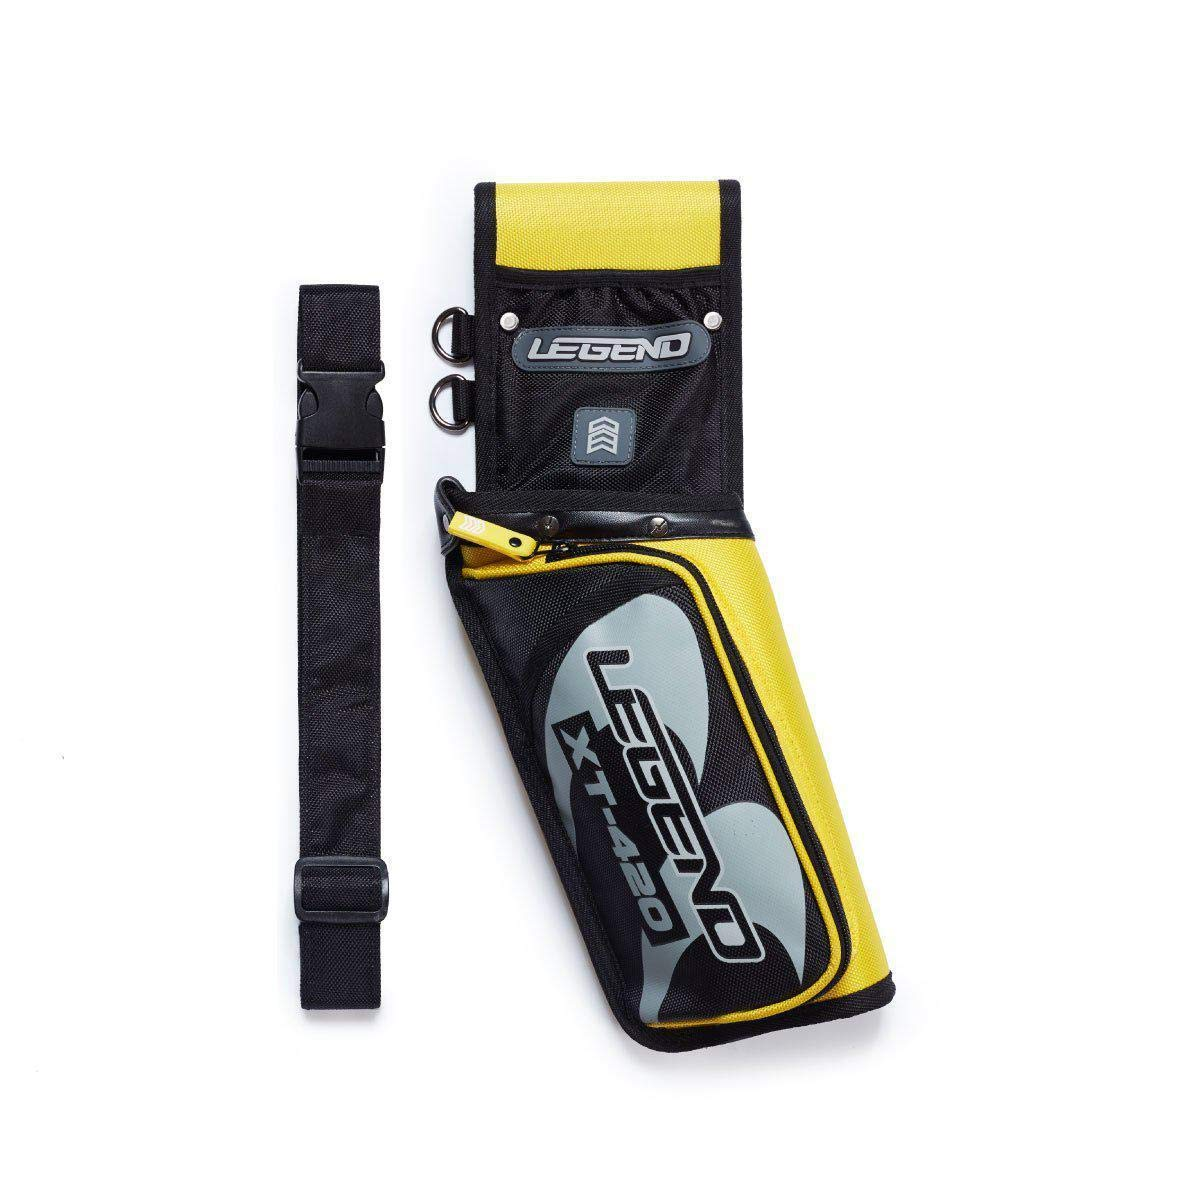 Legend Archery Field Quiver for Arrows with Multi-Pocket Nylon Belt Hip Arrow Holder Lightweight and Functional XT420 (Yellow/Right)